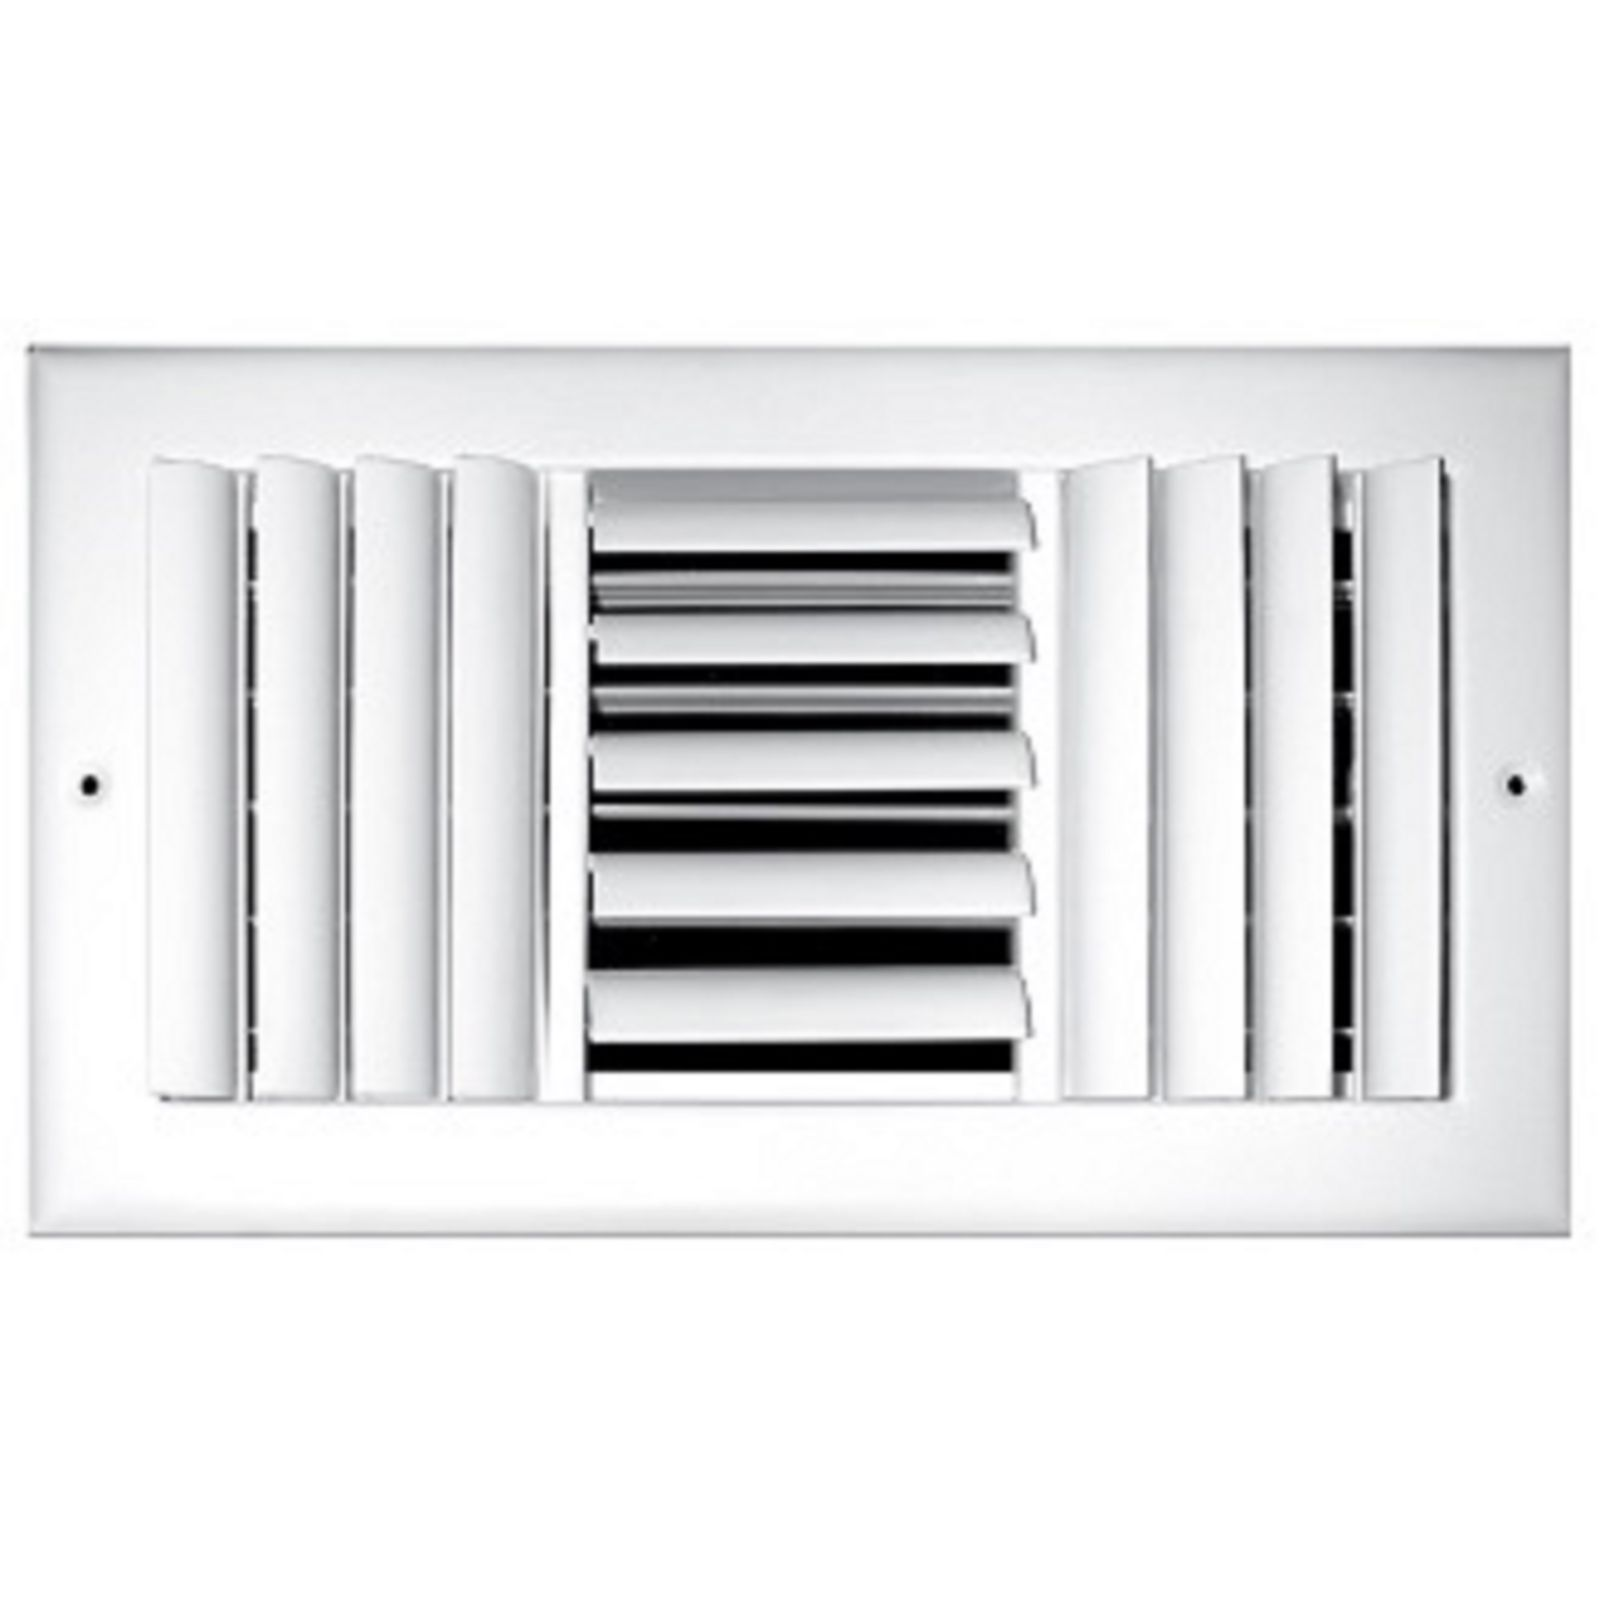 "TRUaire 303M 12X06 - Steel Adjustable Curved Blade Wall/Ceiling Register With Multi Shutter Damper, 3-Way, White, 12"" X 06"""